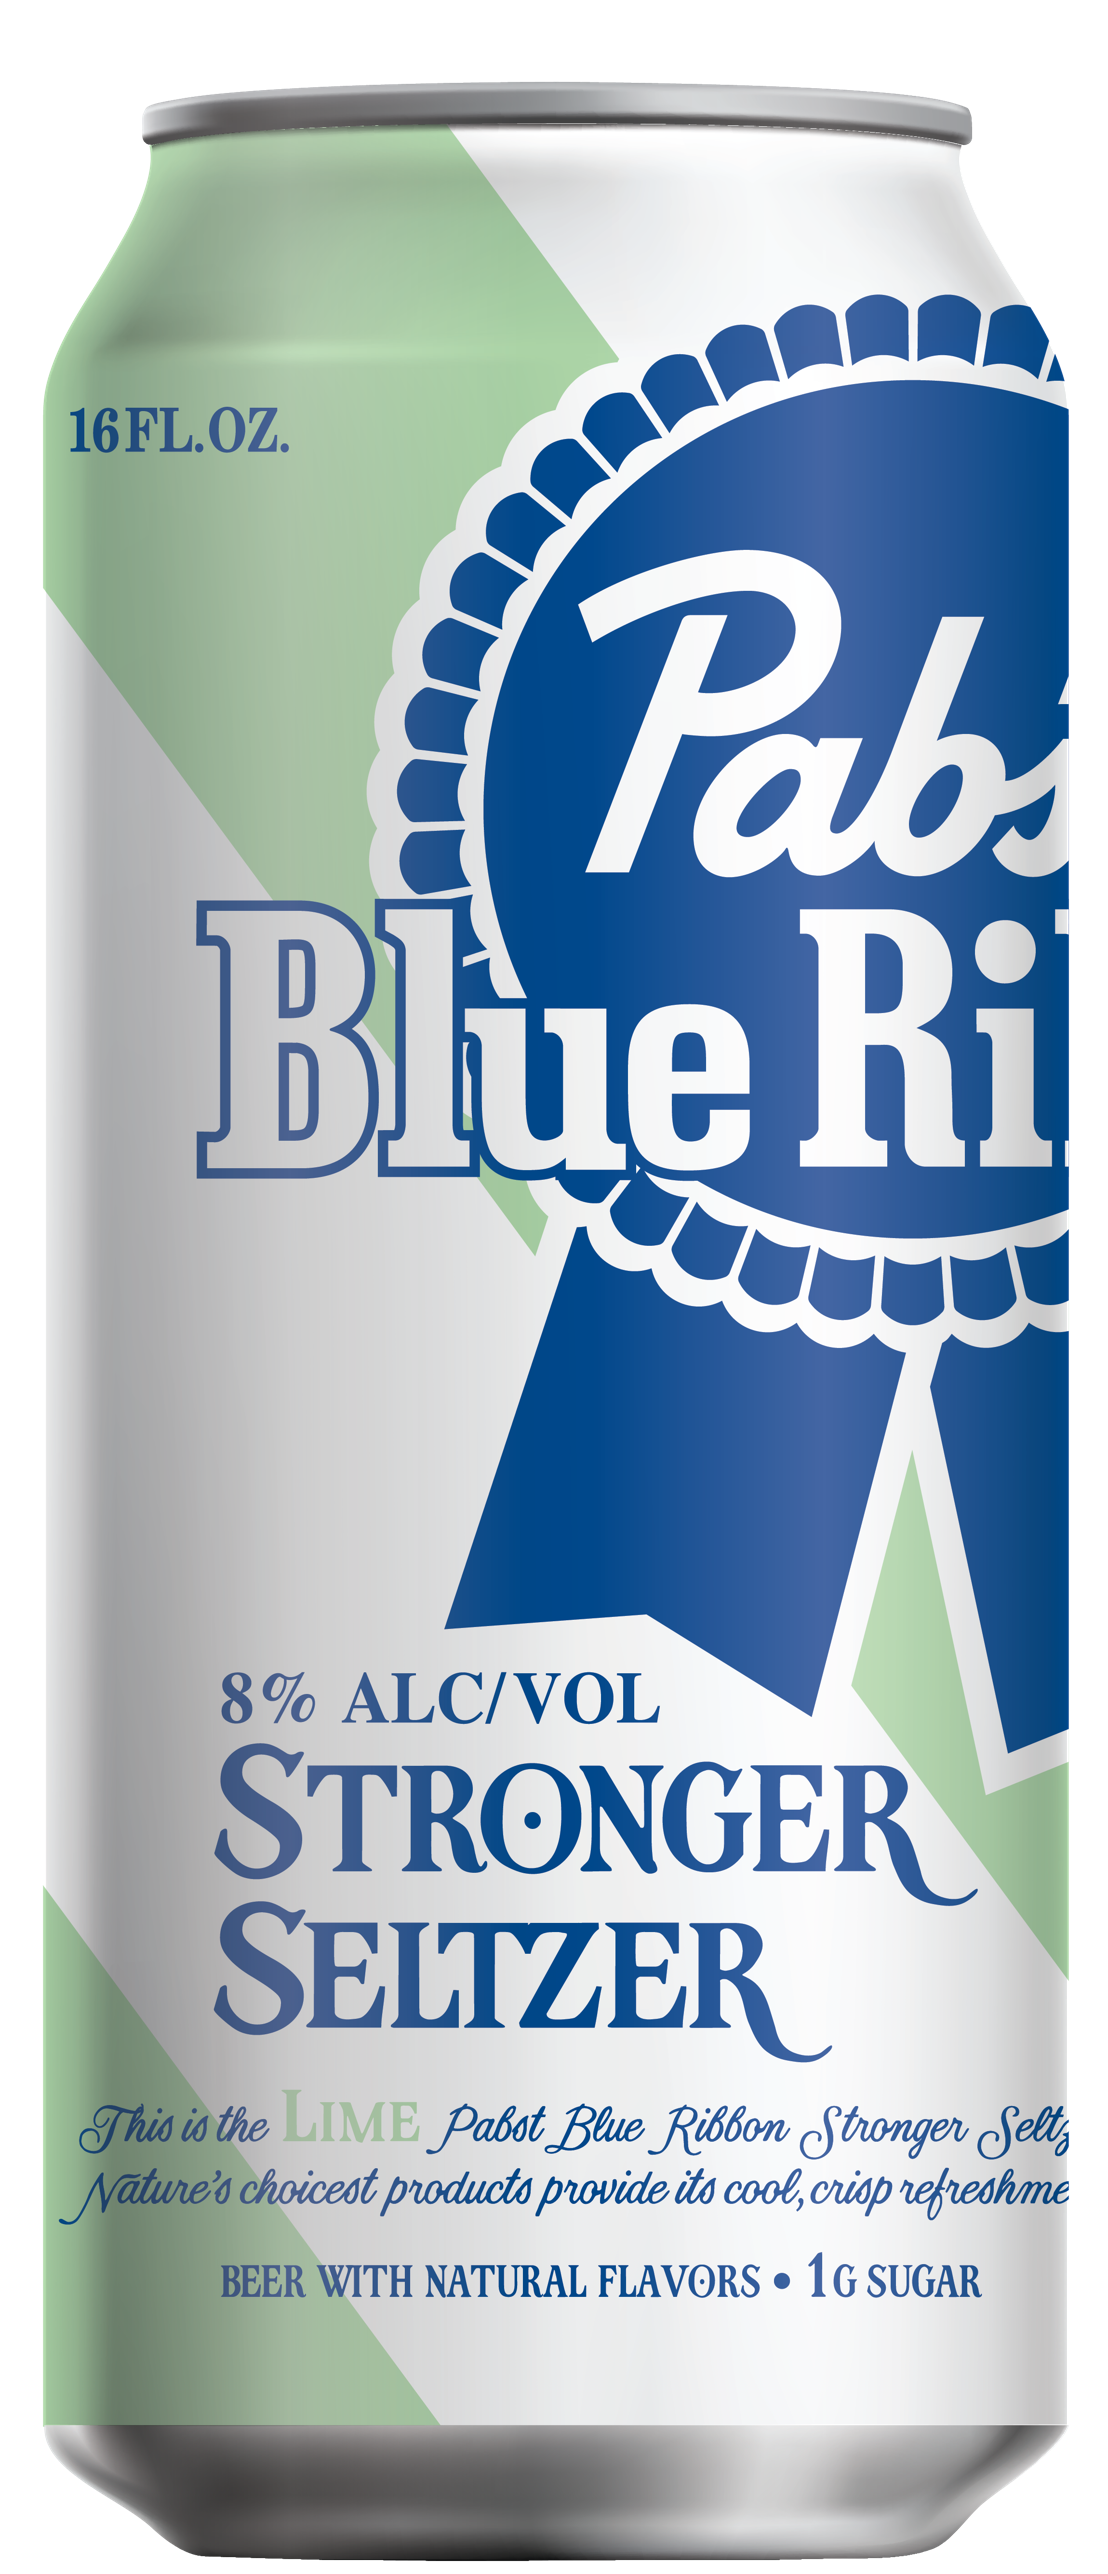 Pabst Blue Ribbon Rolls Out Stronger Seltzer This August